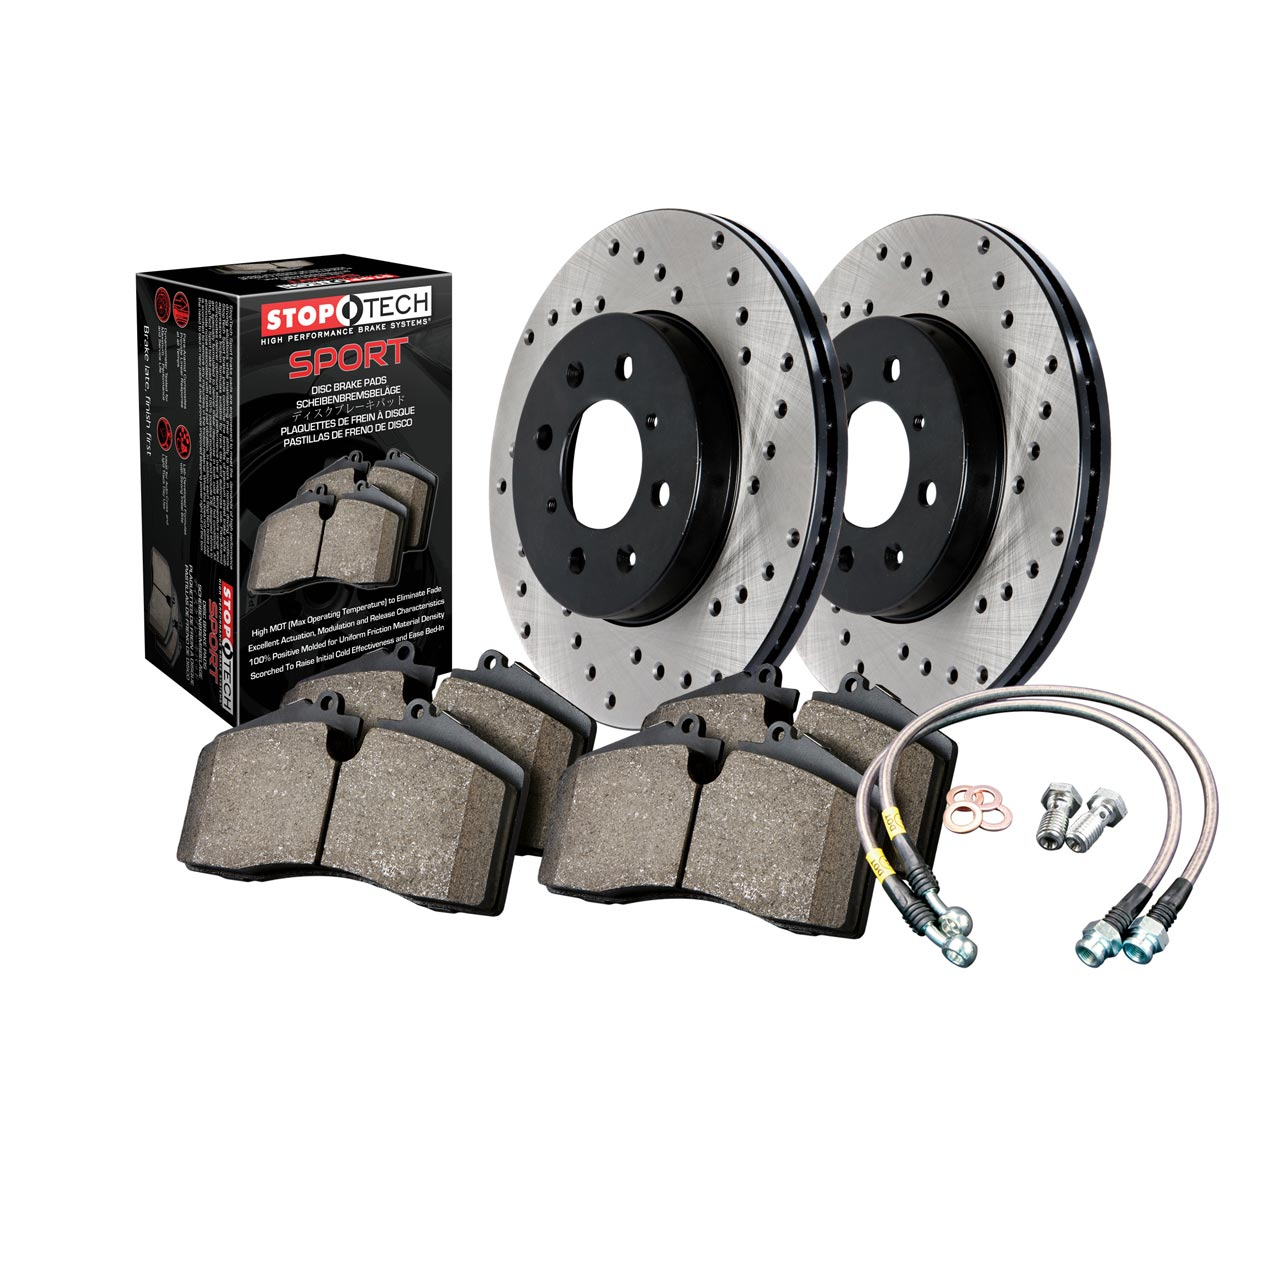 Front /& Rear StopTech Drilled Slotted Brake Rotors Kit for Subaru BRZ Impreza